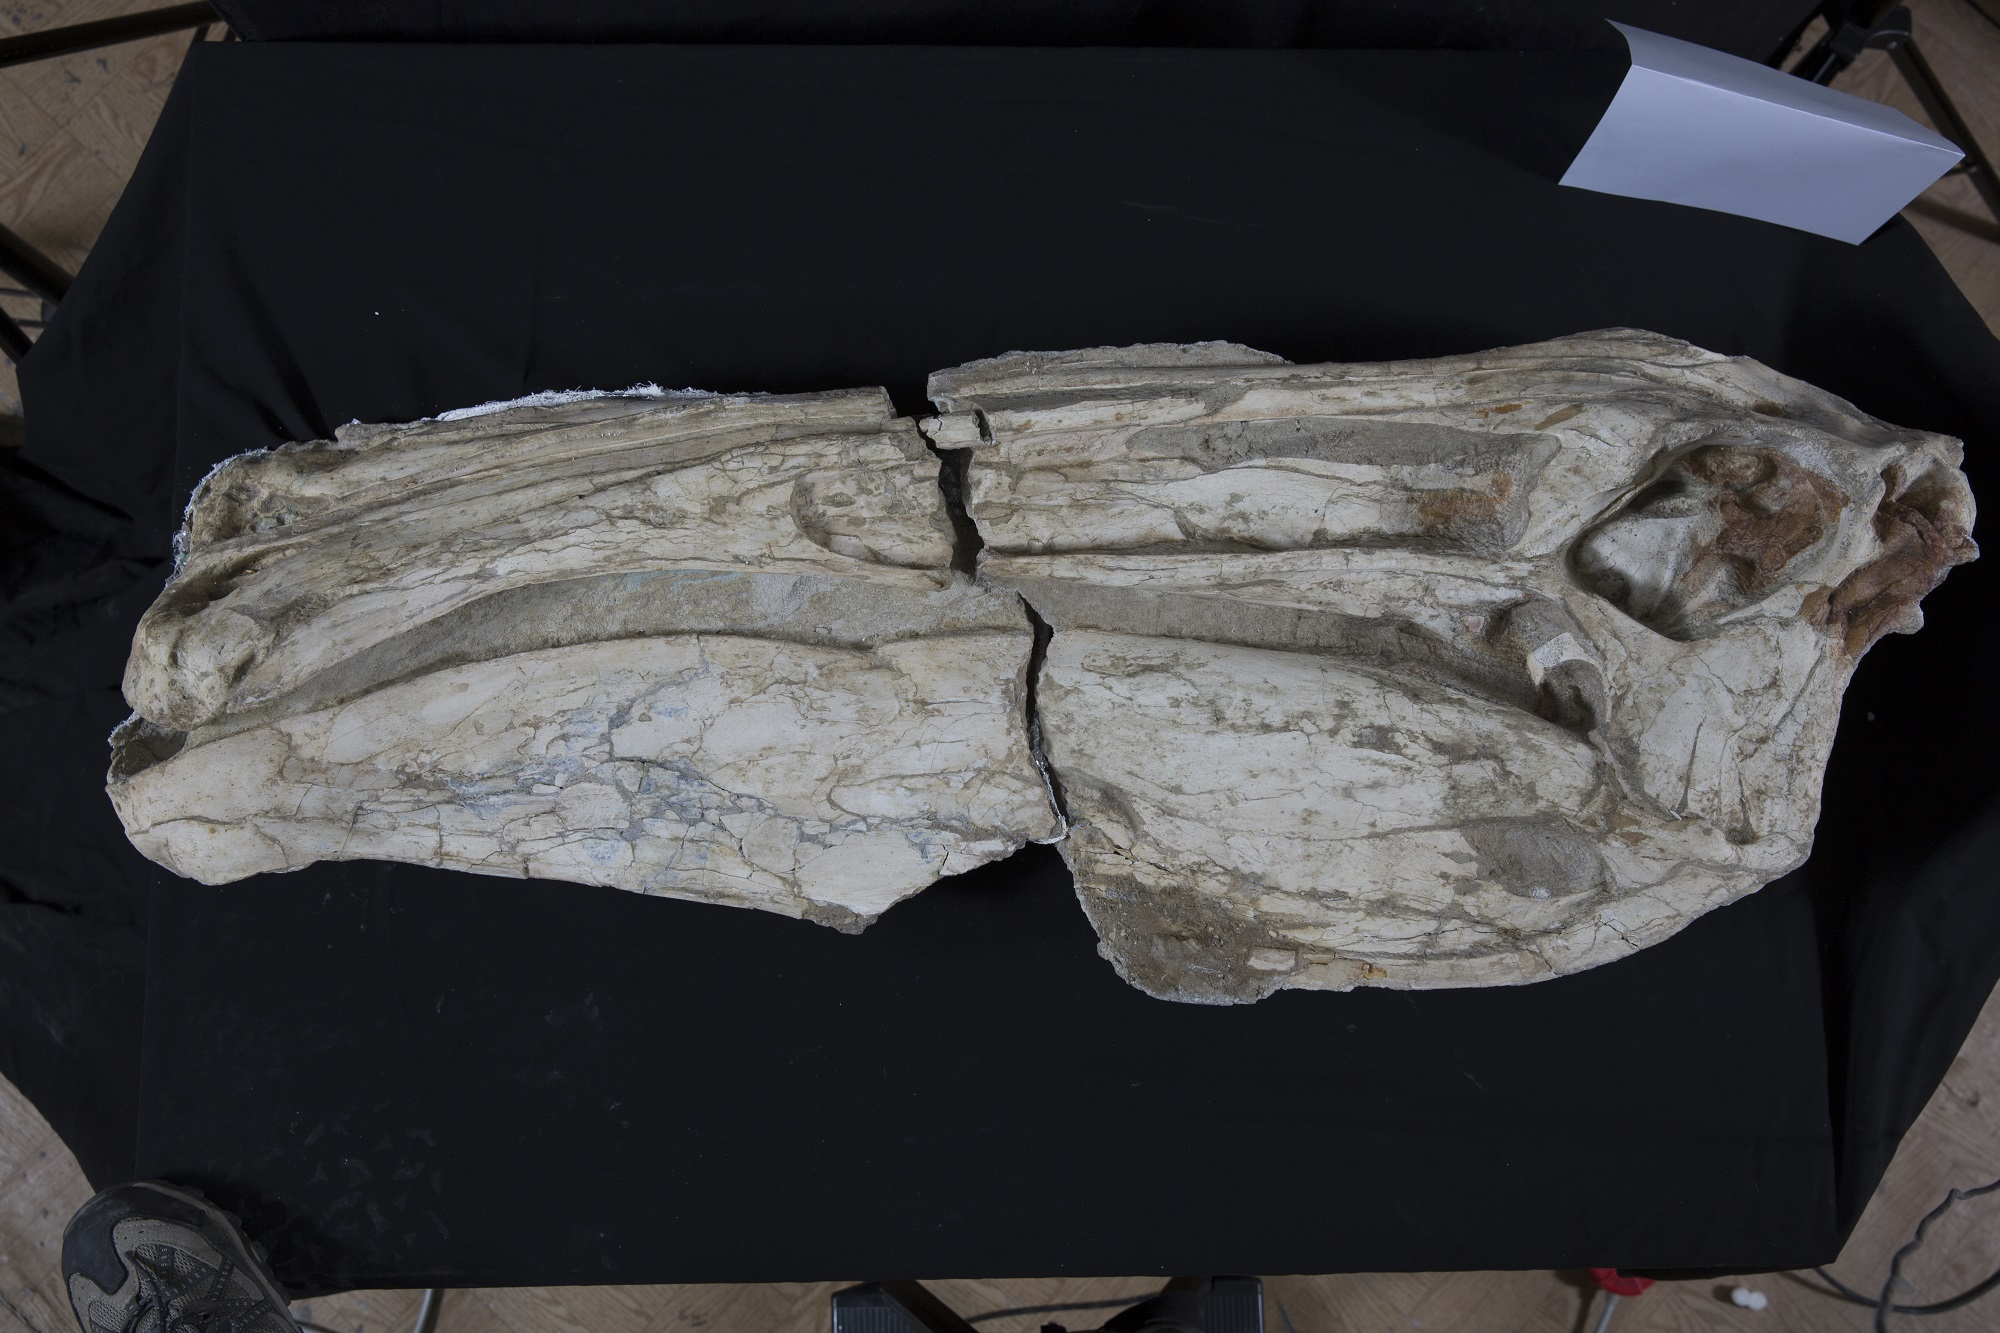 デイノケイルス 頭部 (実物化石)© Institute of Paleontology and Geology of Mongolian Academy of Sciences